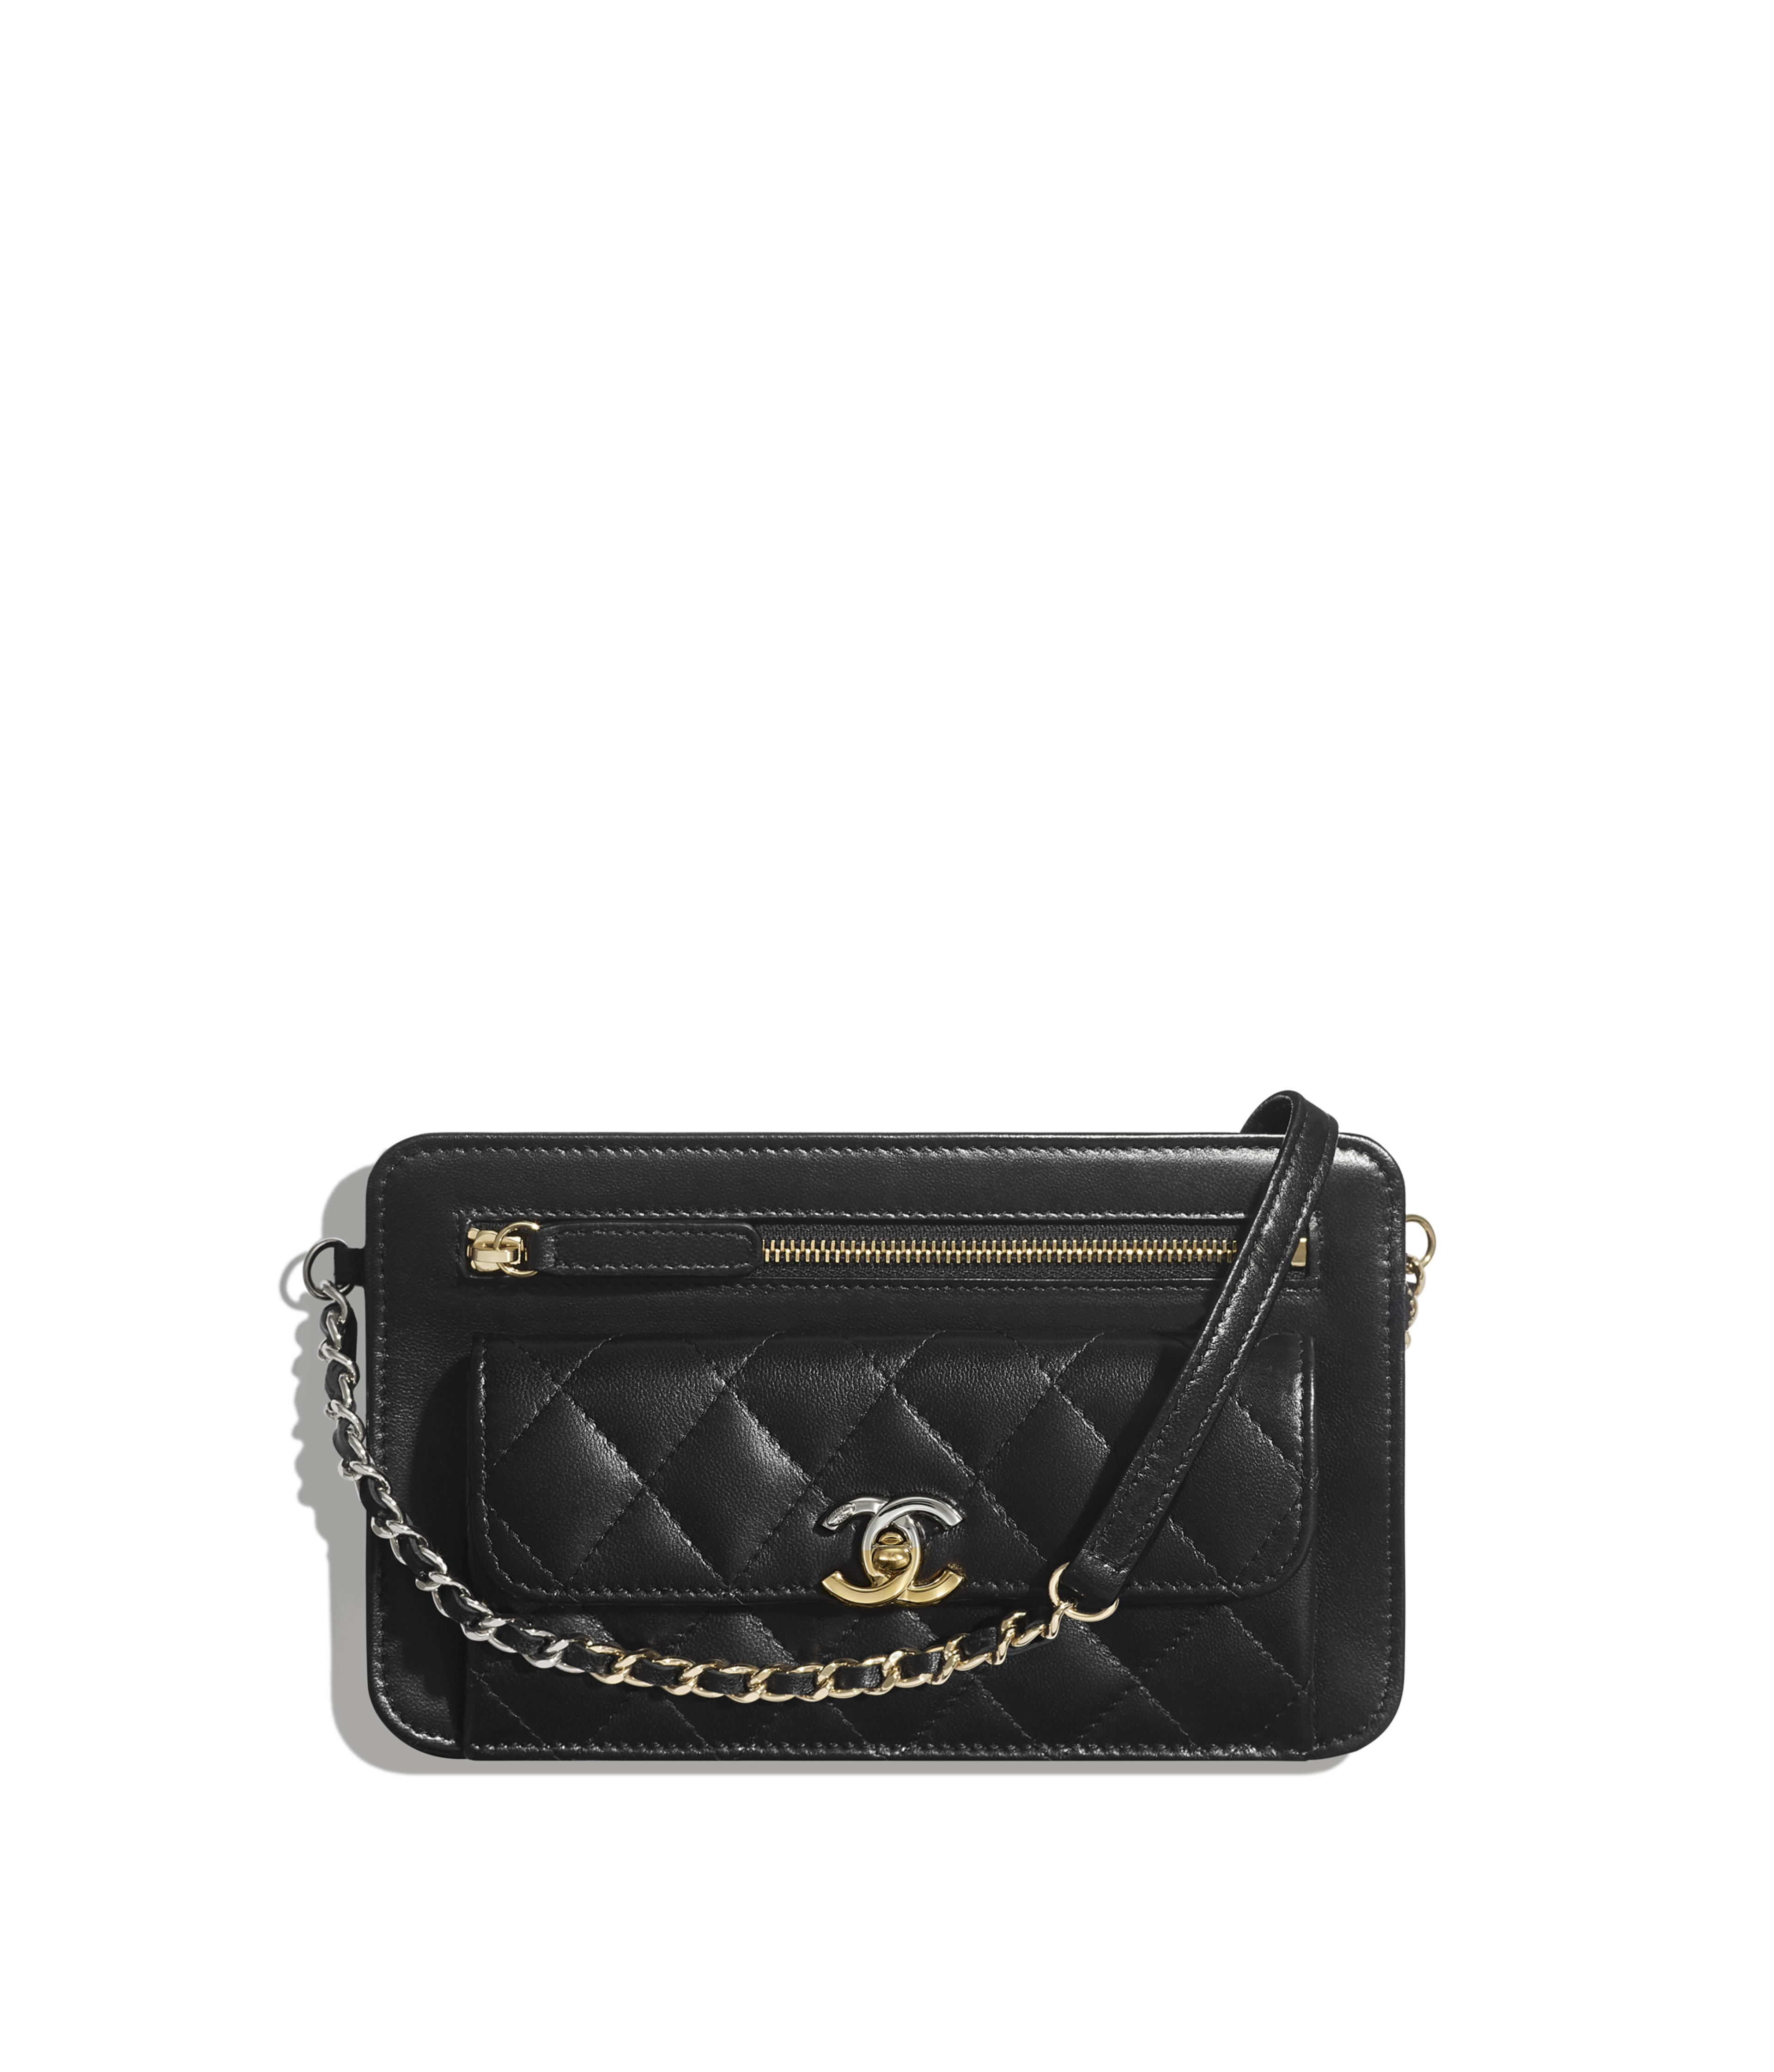 3bcb07318ea3 Clutch with Chain Lambskin